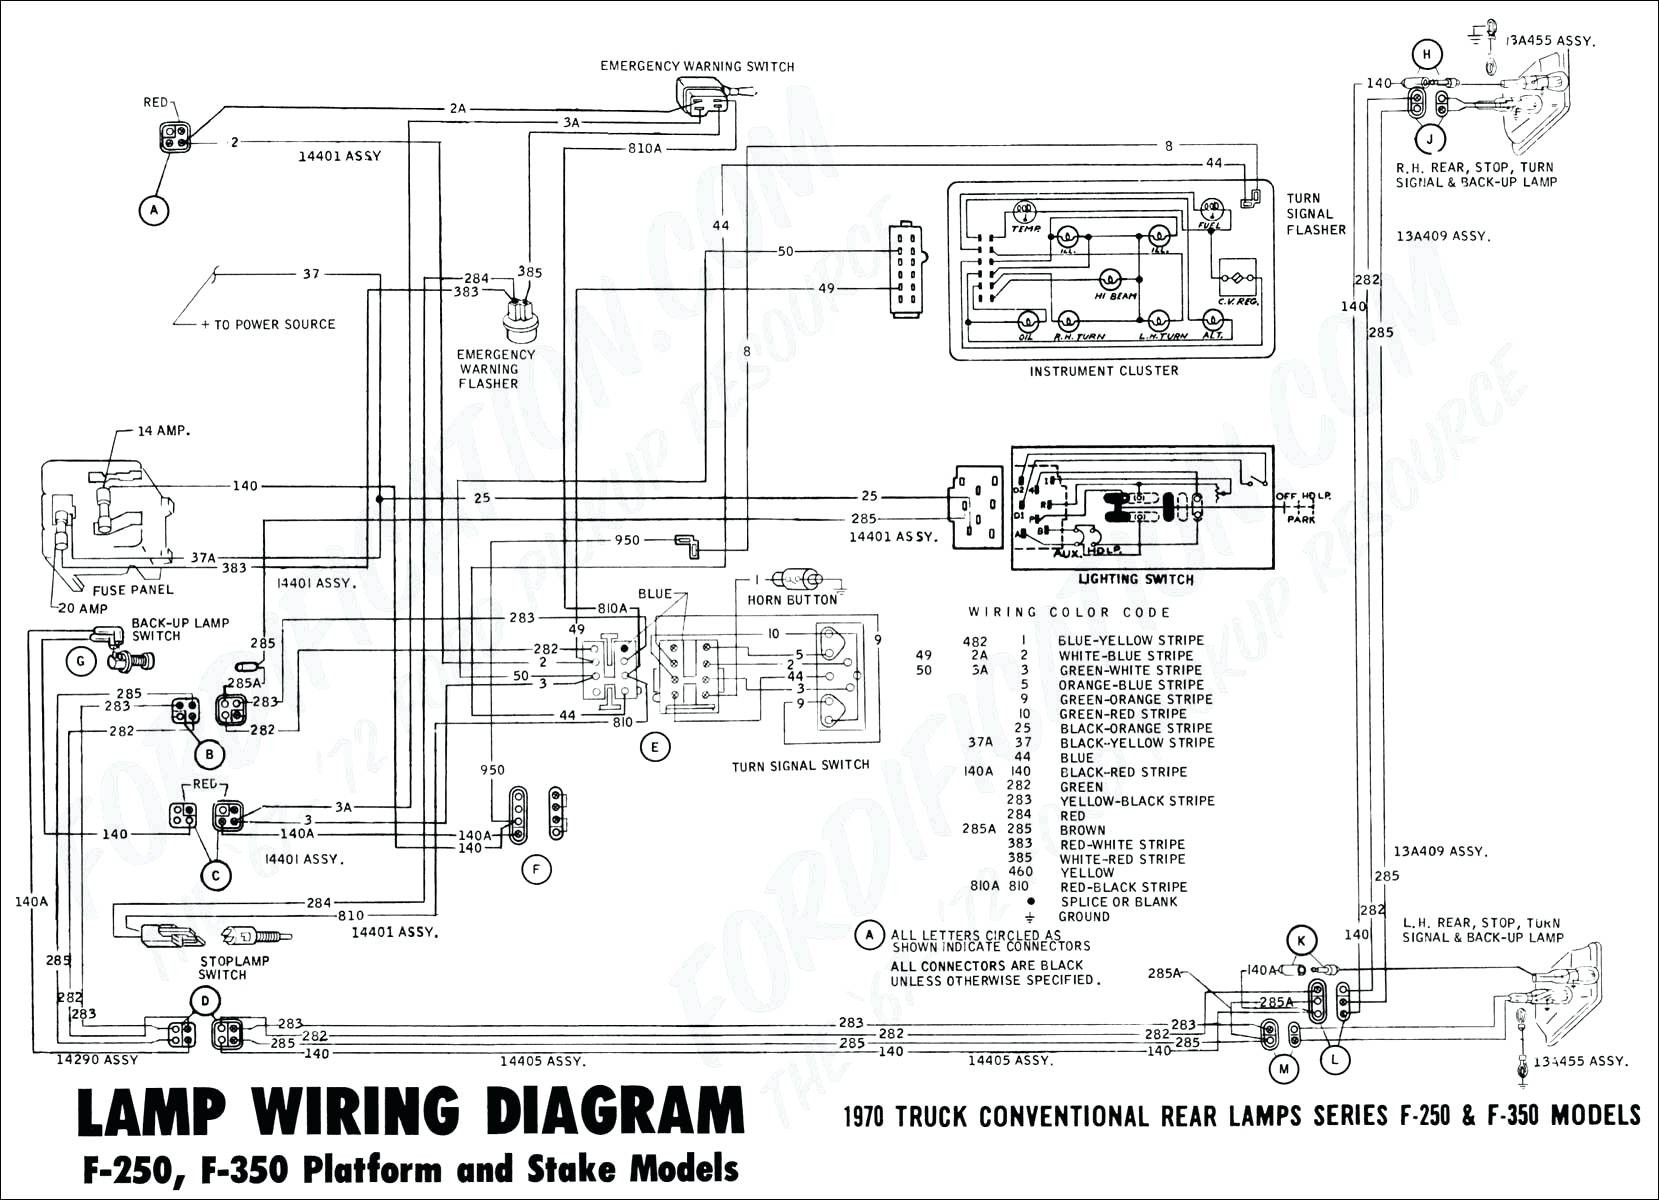 Tail Light Wiring Diagram 1996 Chevy Truck Solutions For 2005 Silverado